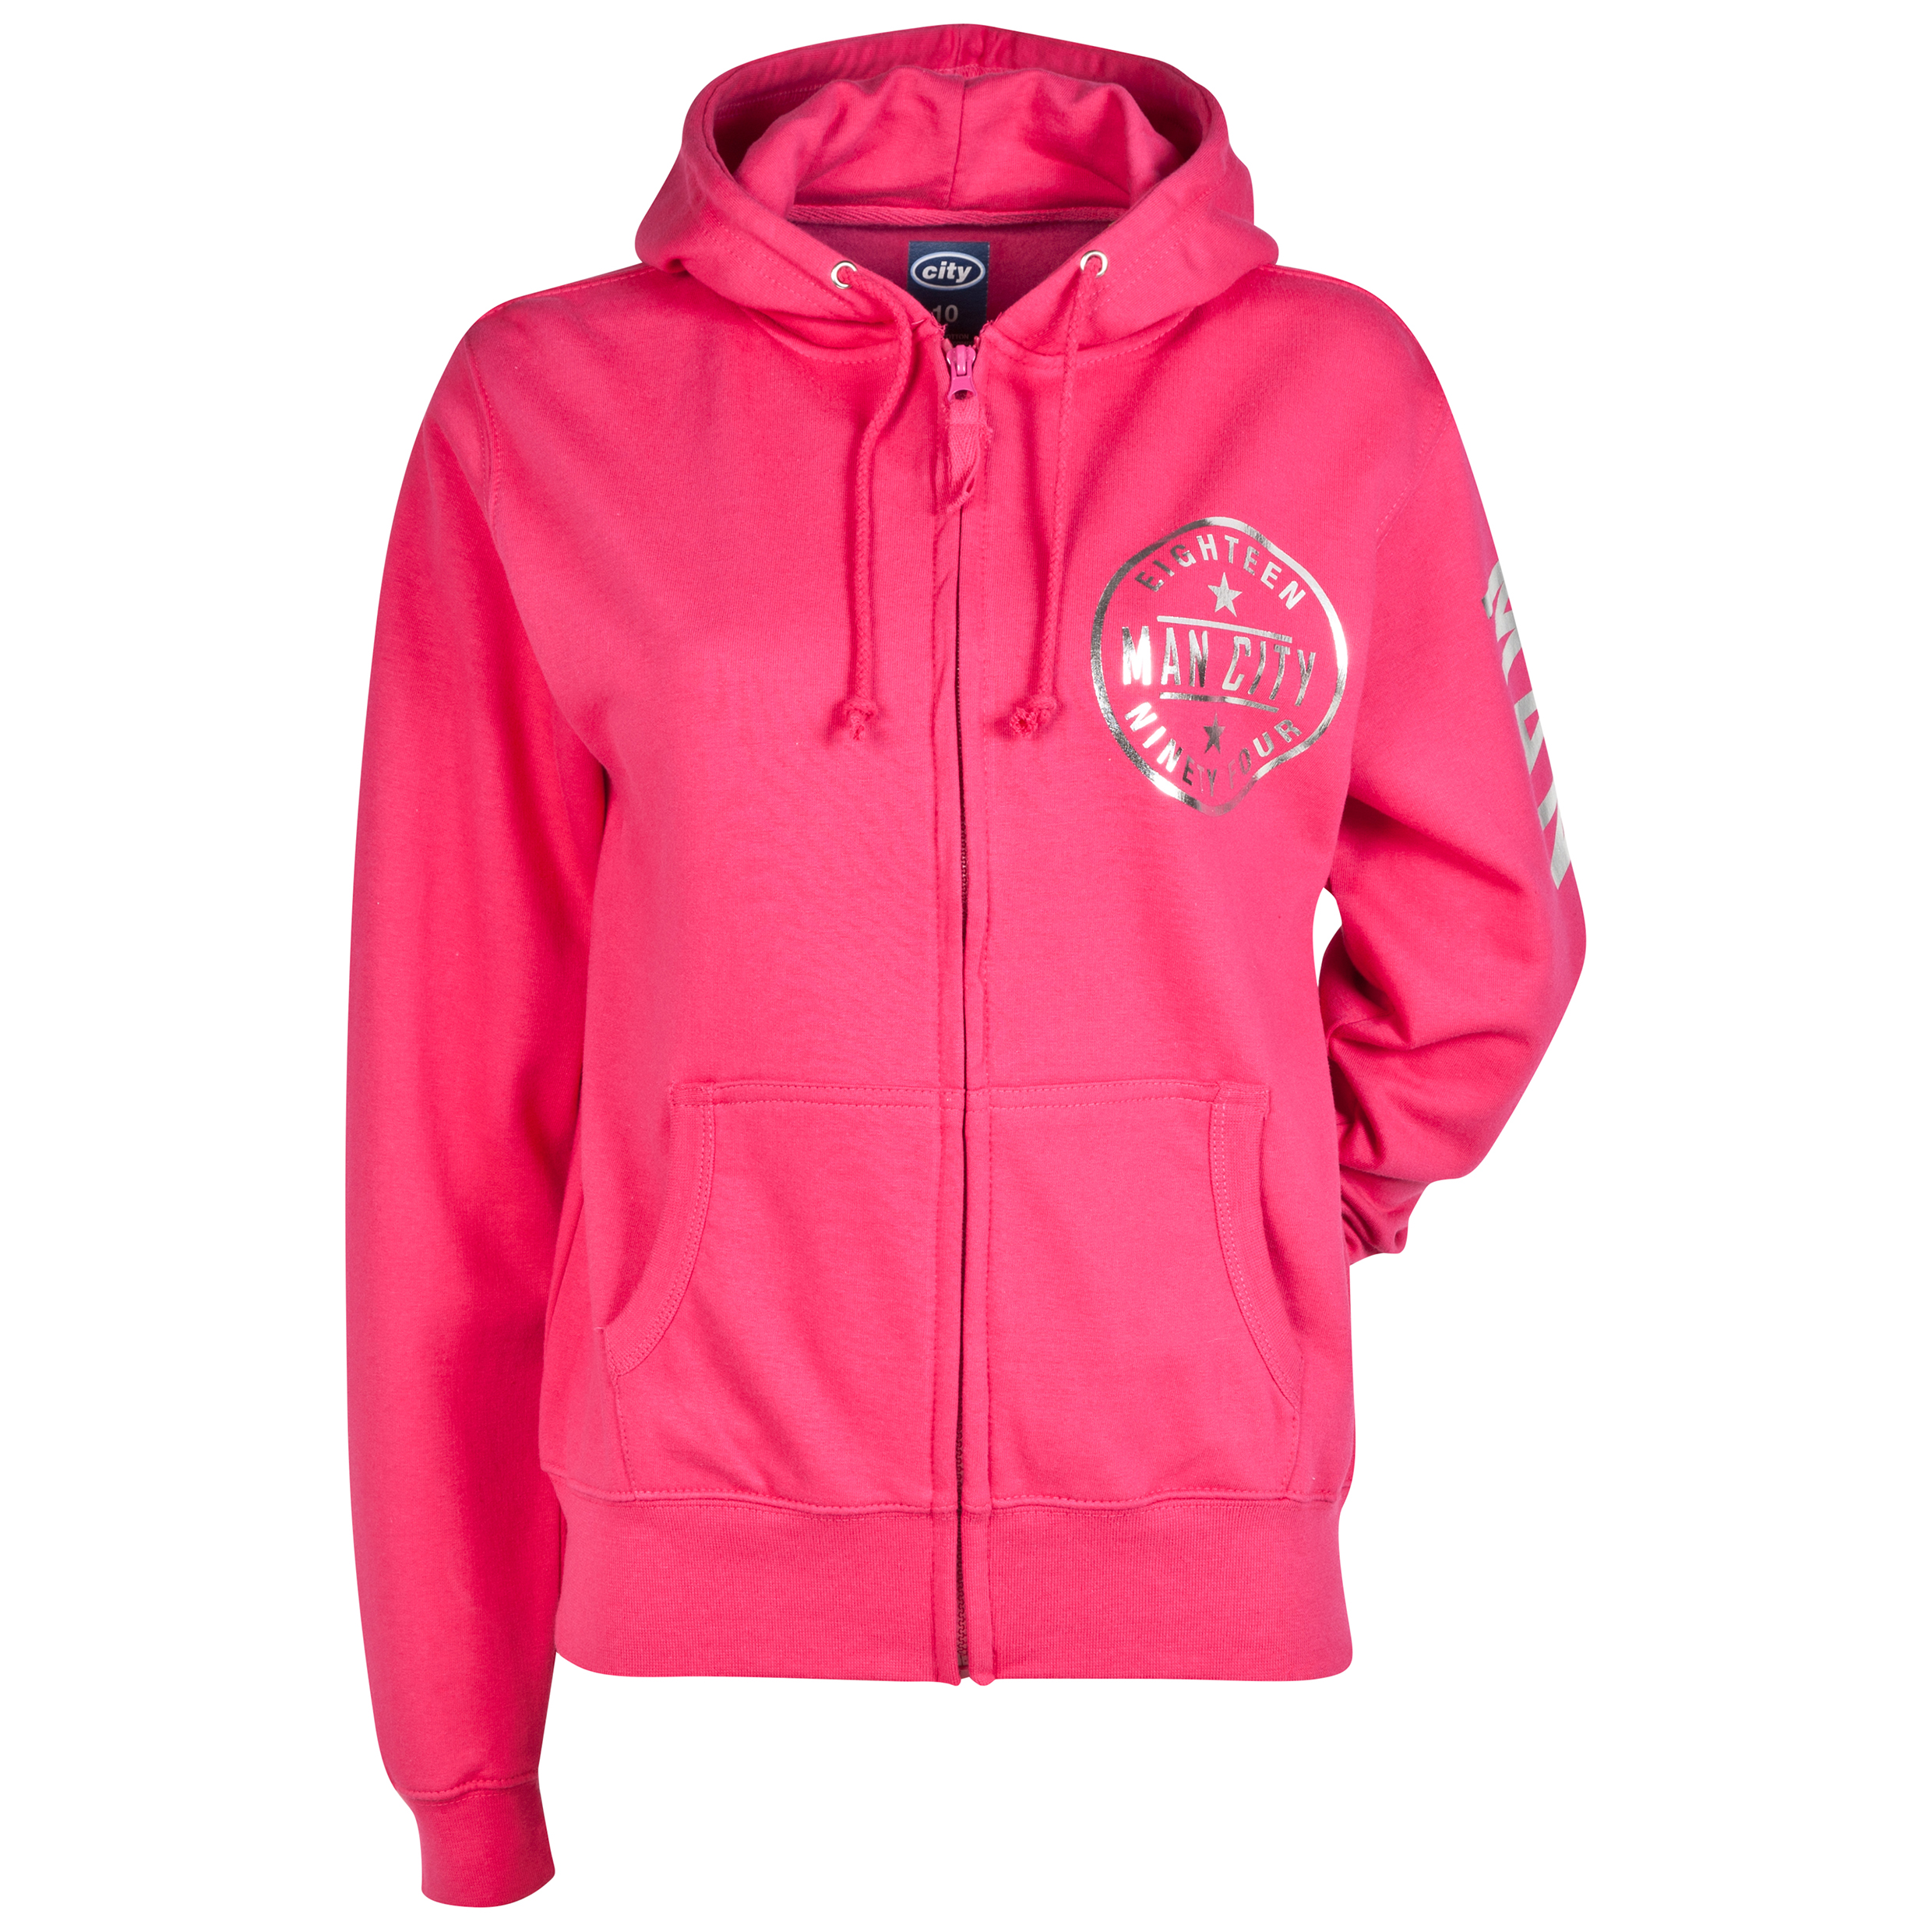 Manchester City Foil Hoodie - Pink- Womens